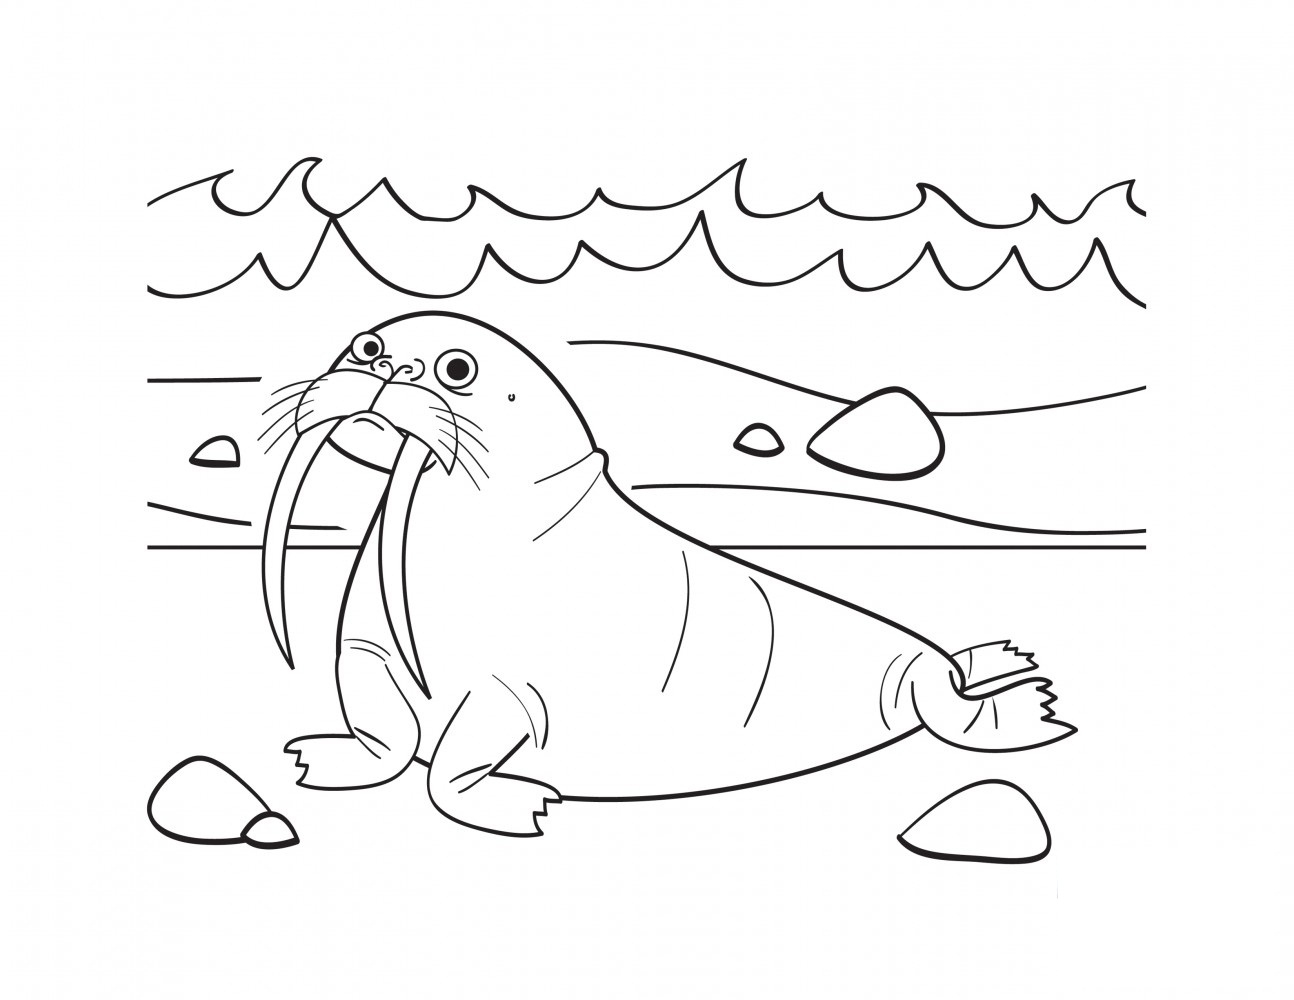 walrus coloring page - walrus coloring pages